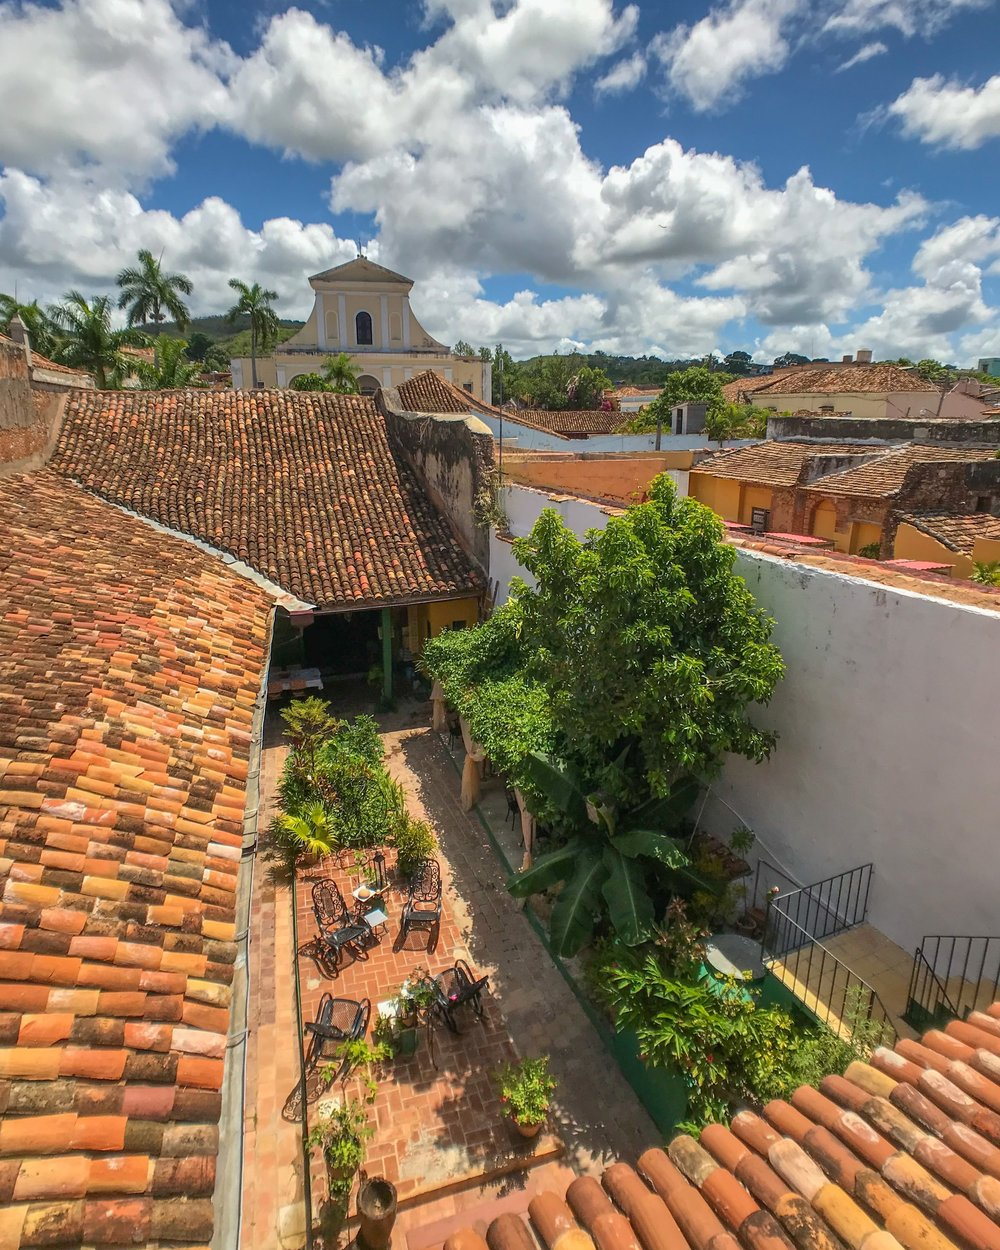 The view from a casa I work with in Trinidad, Cuba